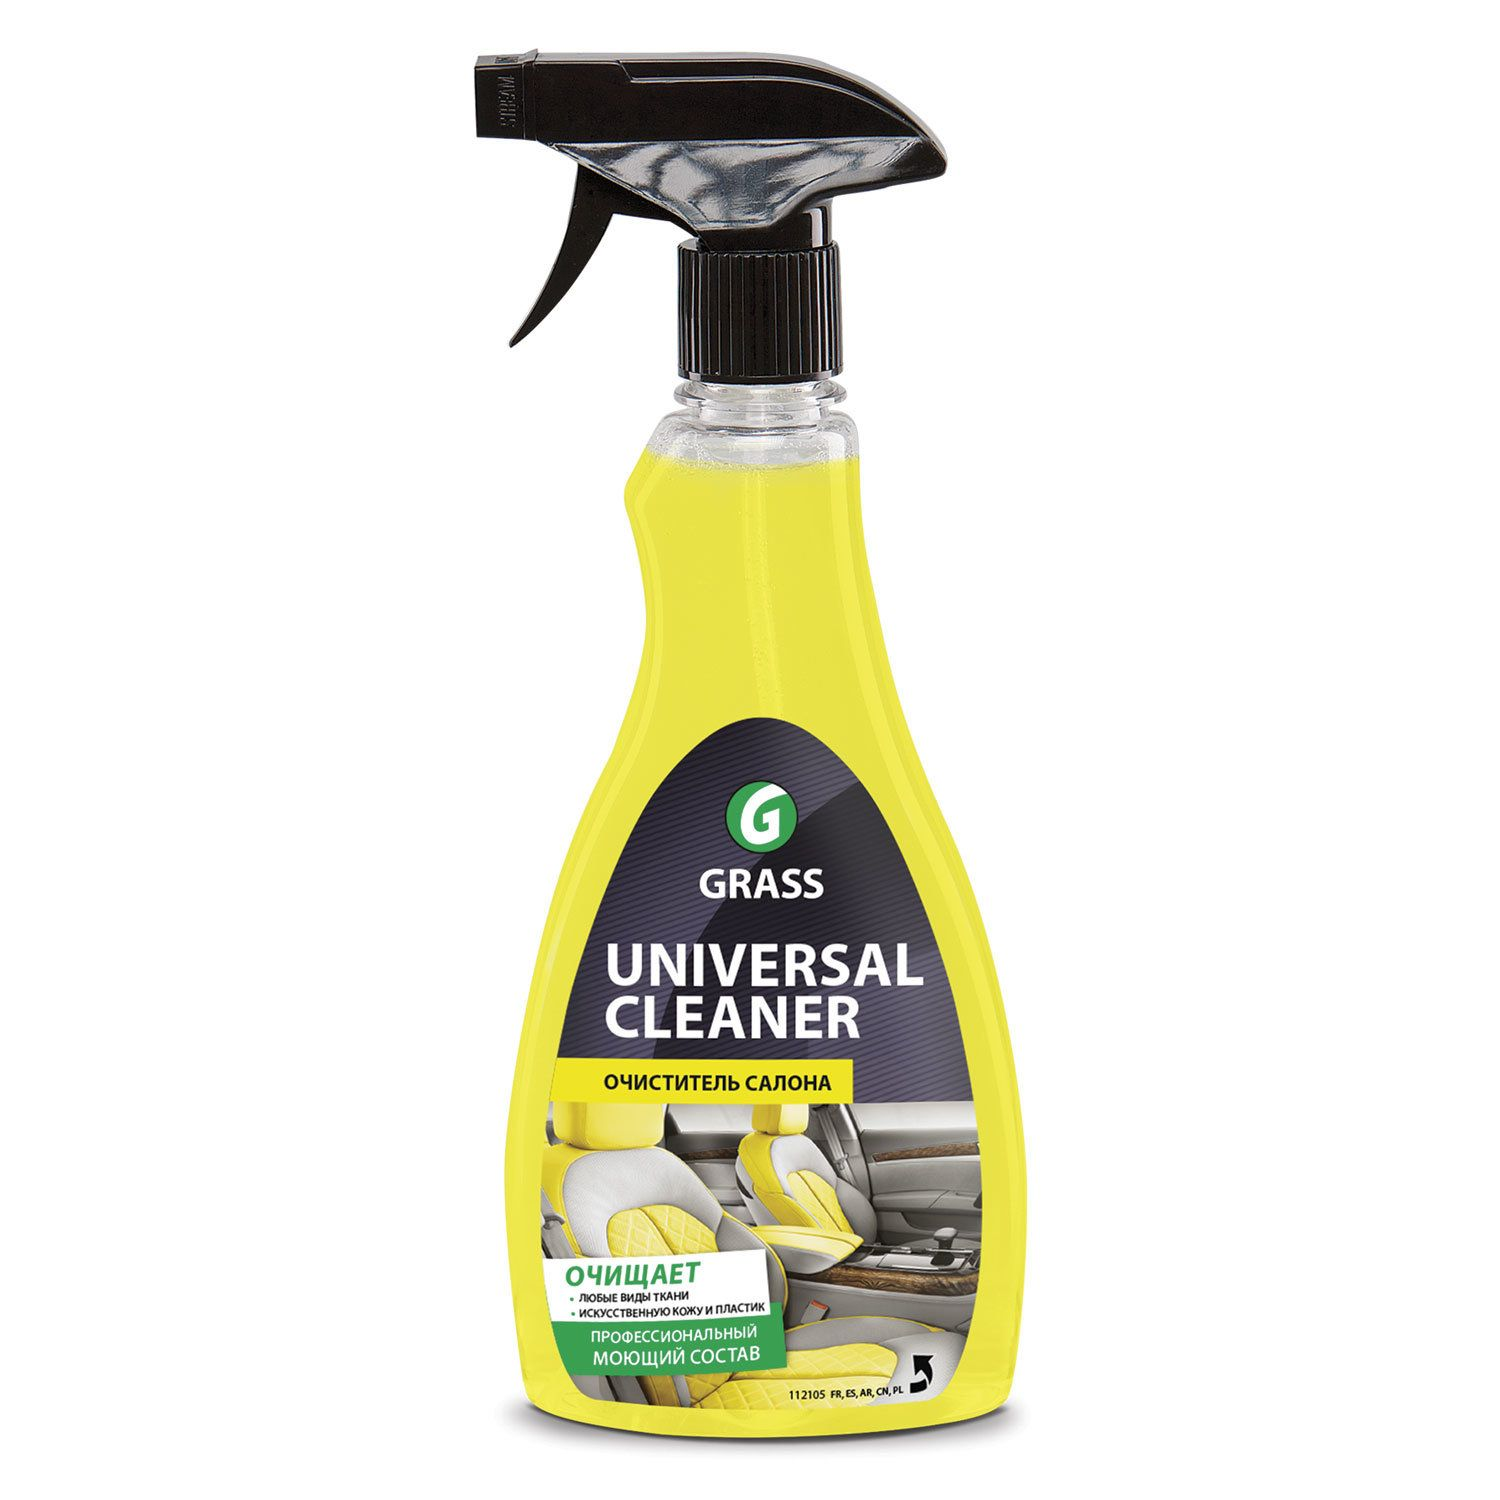 Tool for cleaning the interior GRASS 500 ml UNIVERSAL CLEANER for fabric, plastic, spray